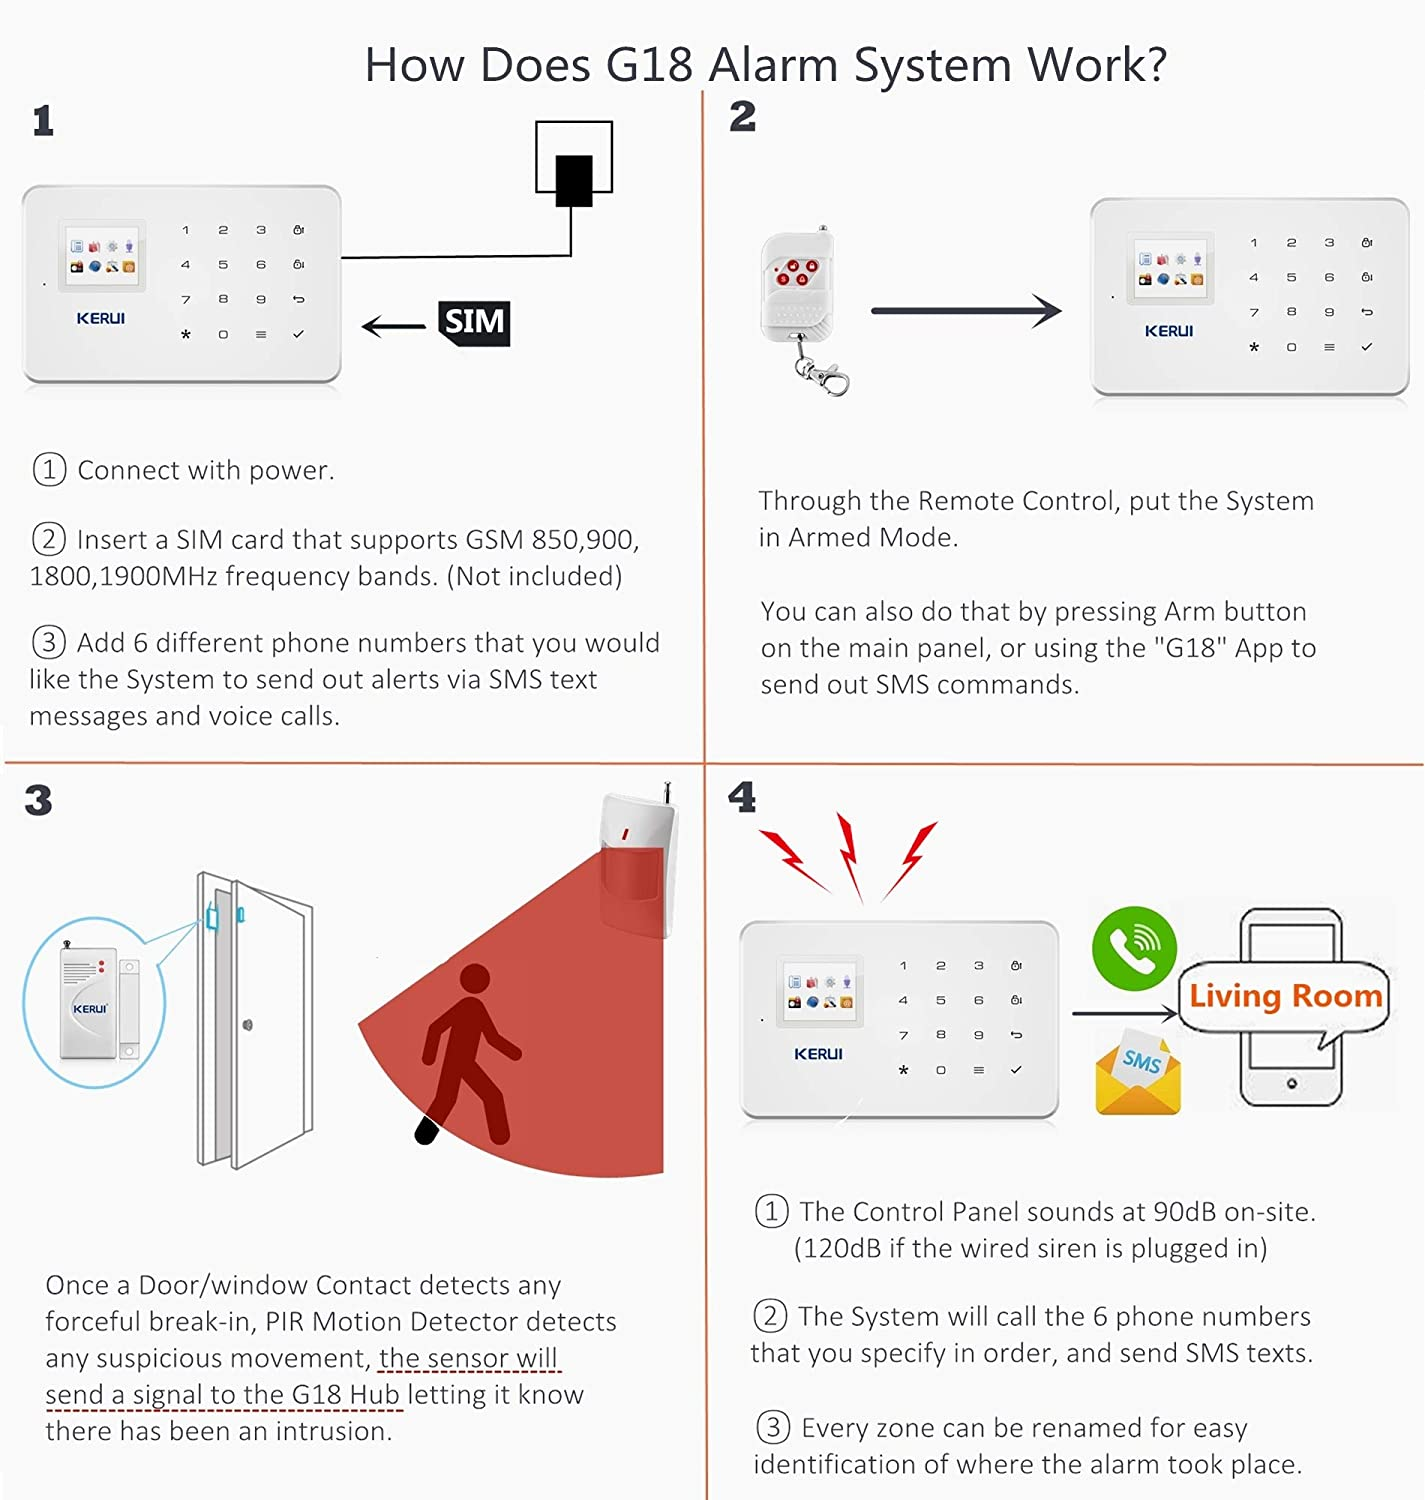 Kerui G18 Gsm Auto Dial Sms Wireless Home Office Dialup Internet Connection Diagram For Medical Alert Systems Electronics